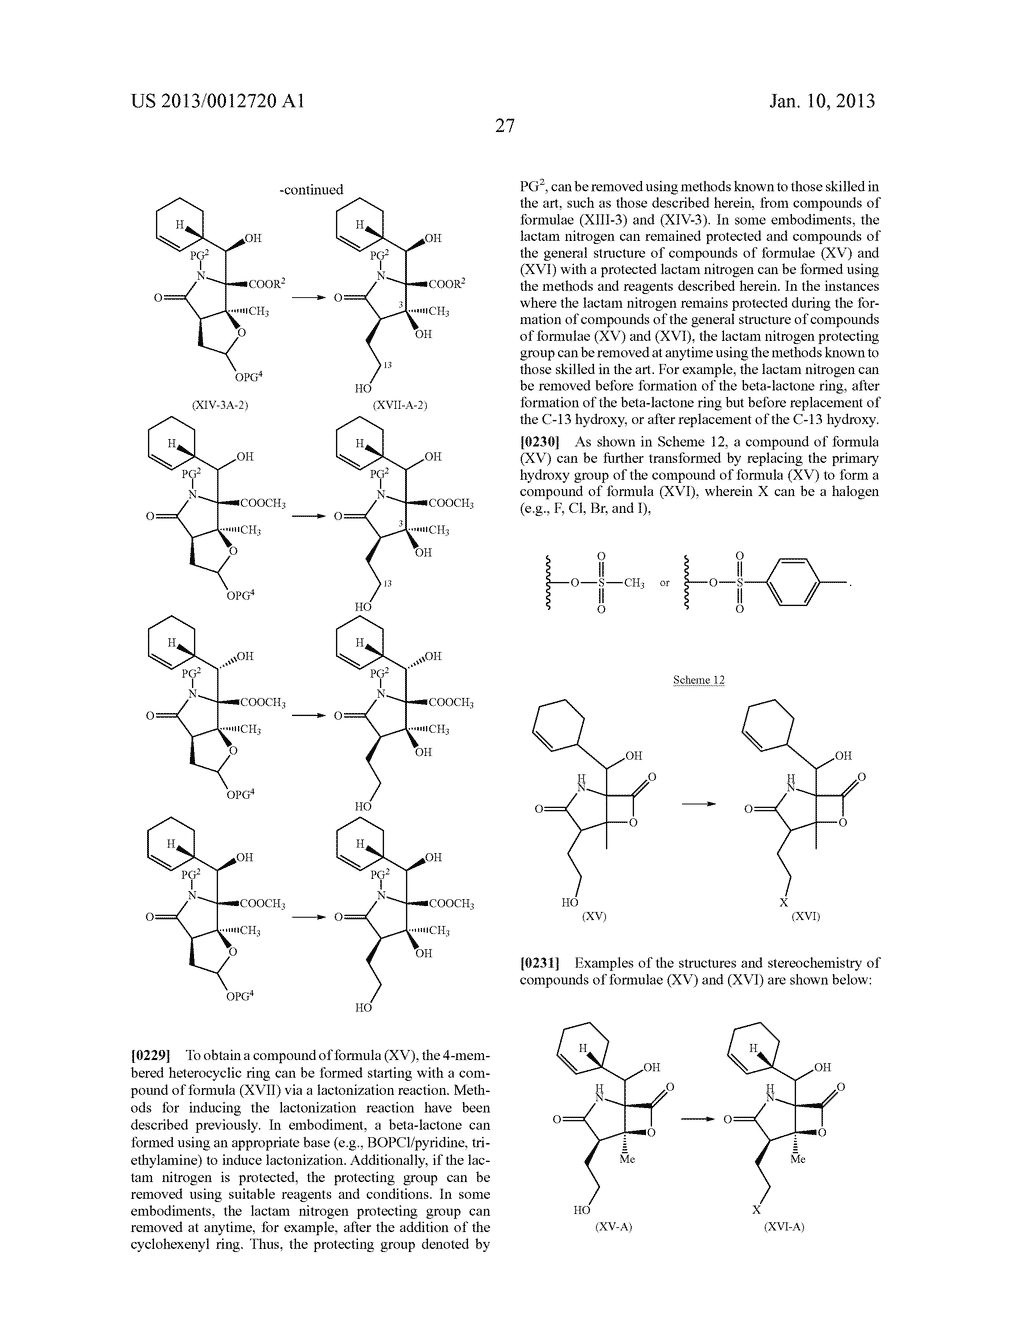 TOTAL SYNTHESIS OF SALINOSPORAMIDE A AND ANALOGS THEREOF - diagram, schematic, and image 89